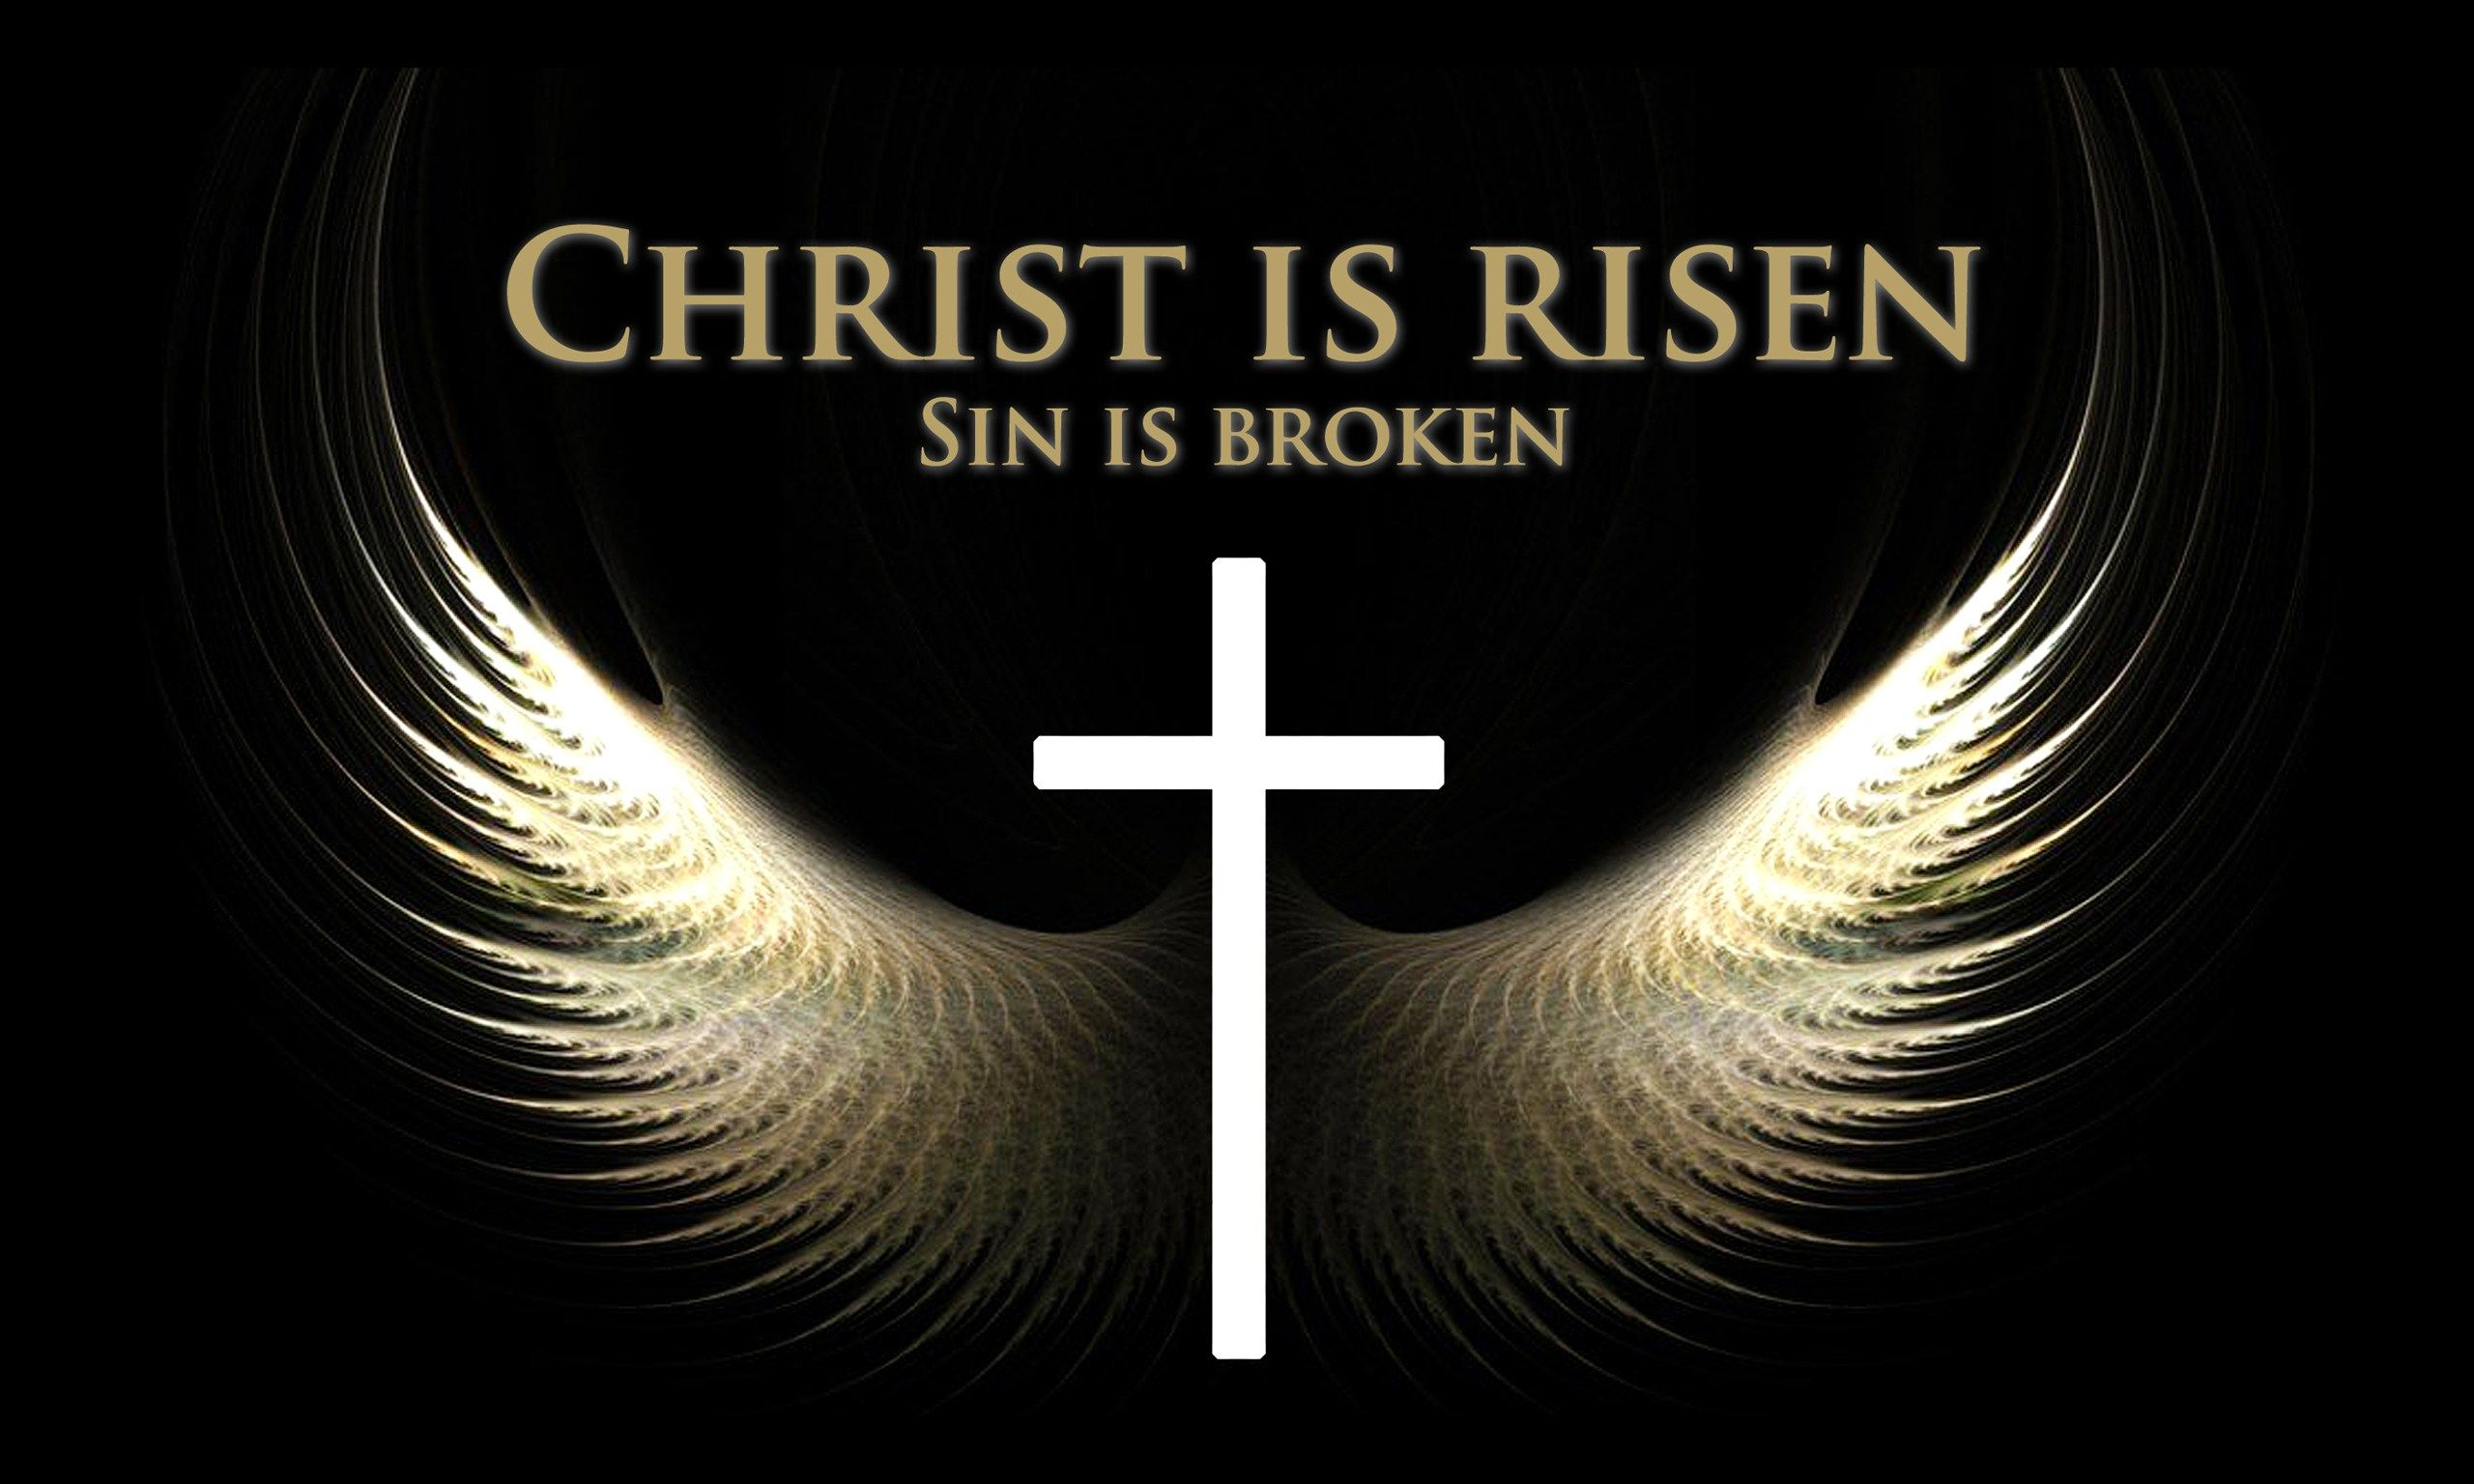 Free Christian Screensavers And Wallpaper Christian Screensavers Christ Is Risen Christian Wallpaper